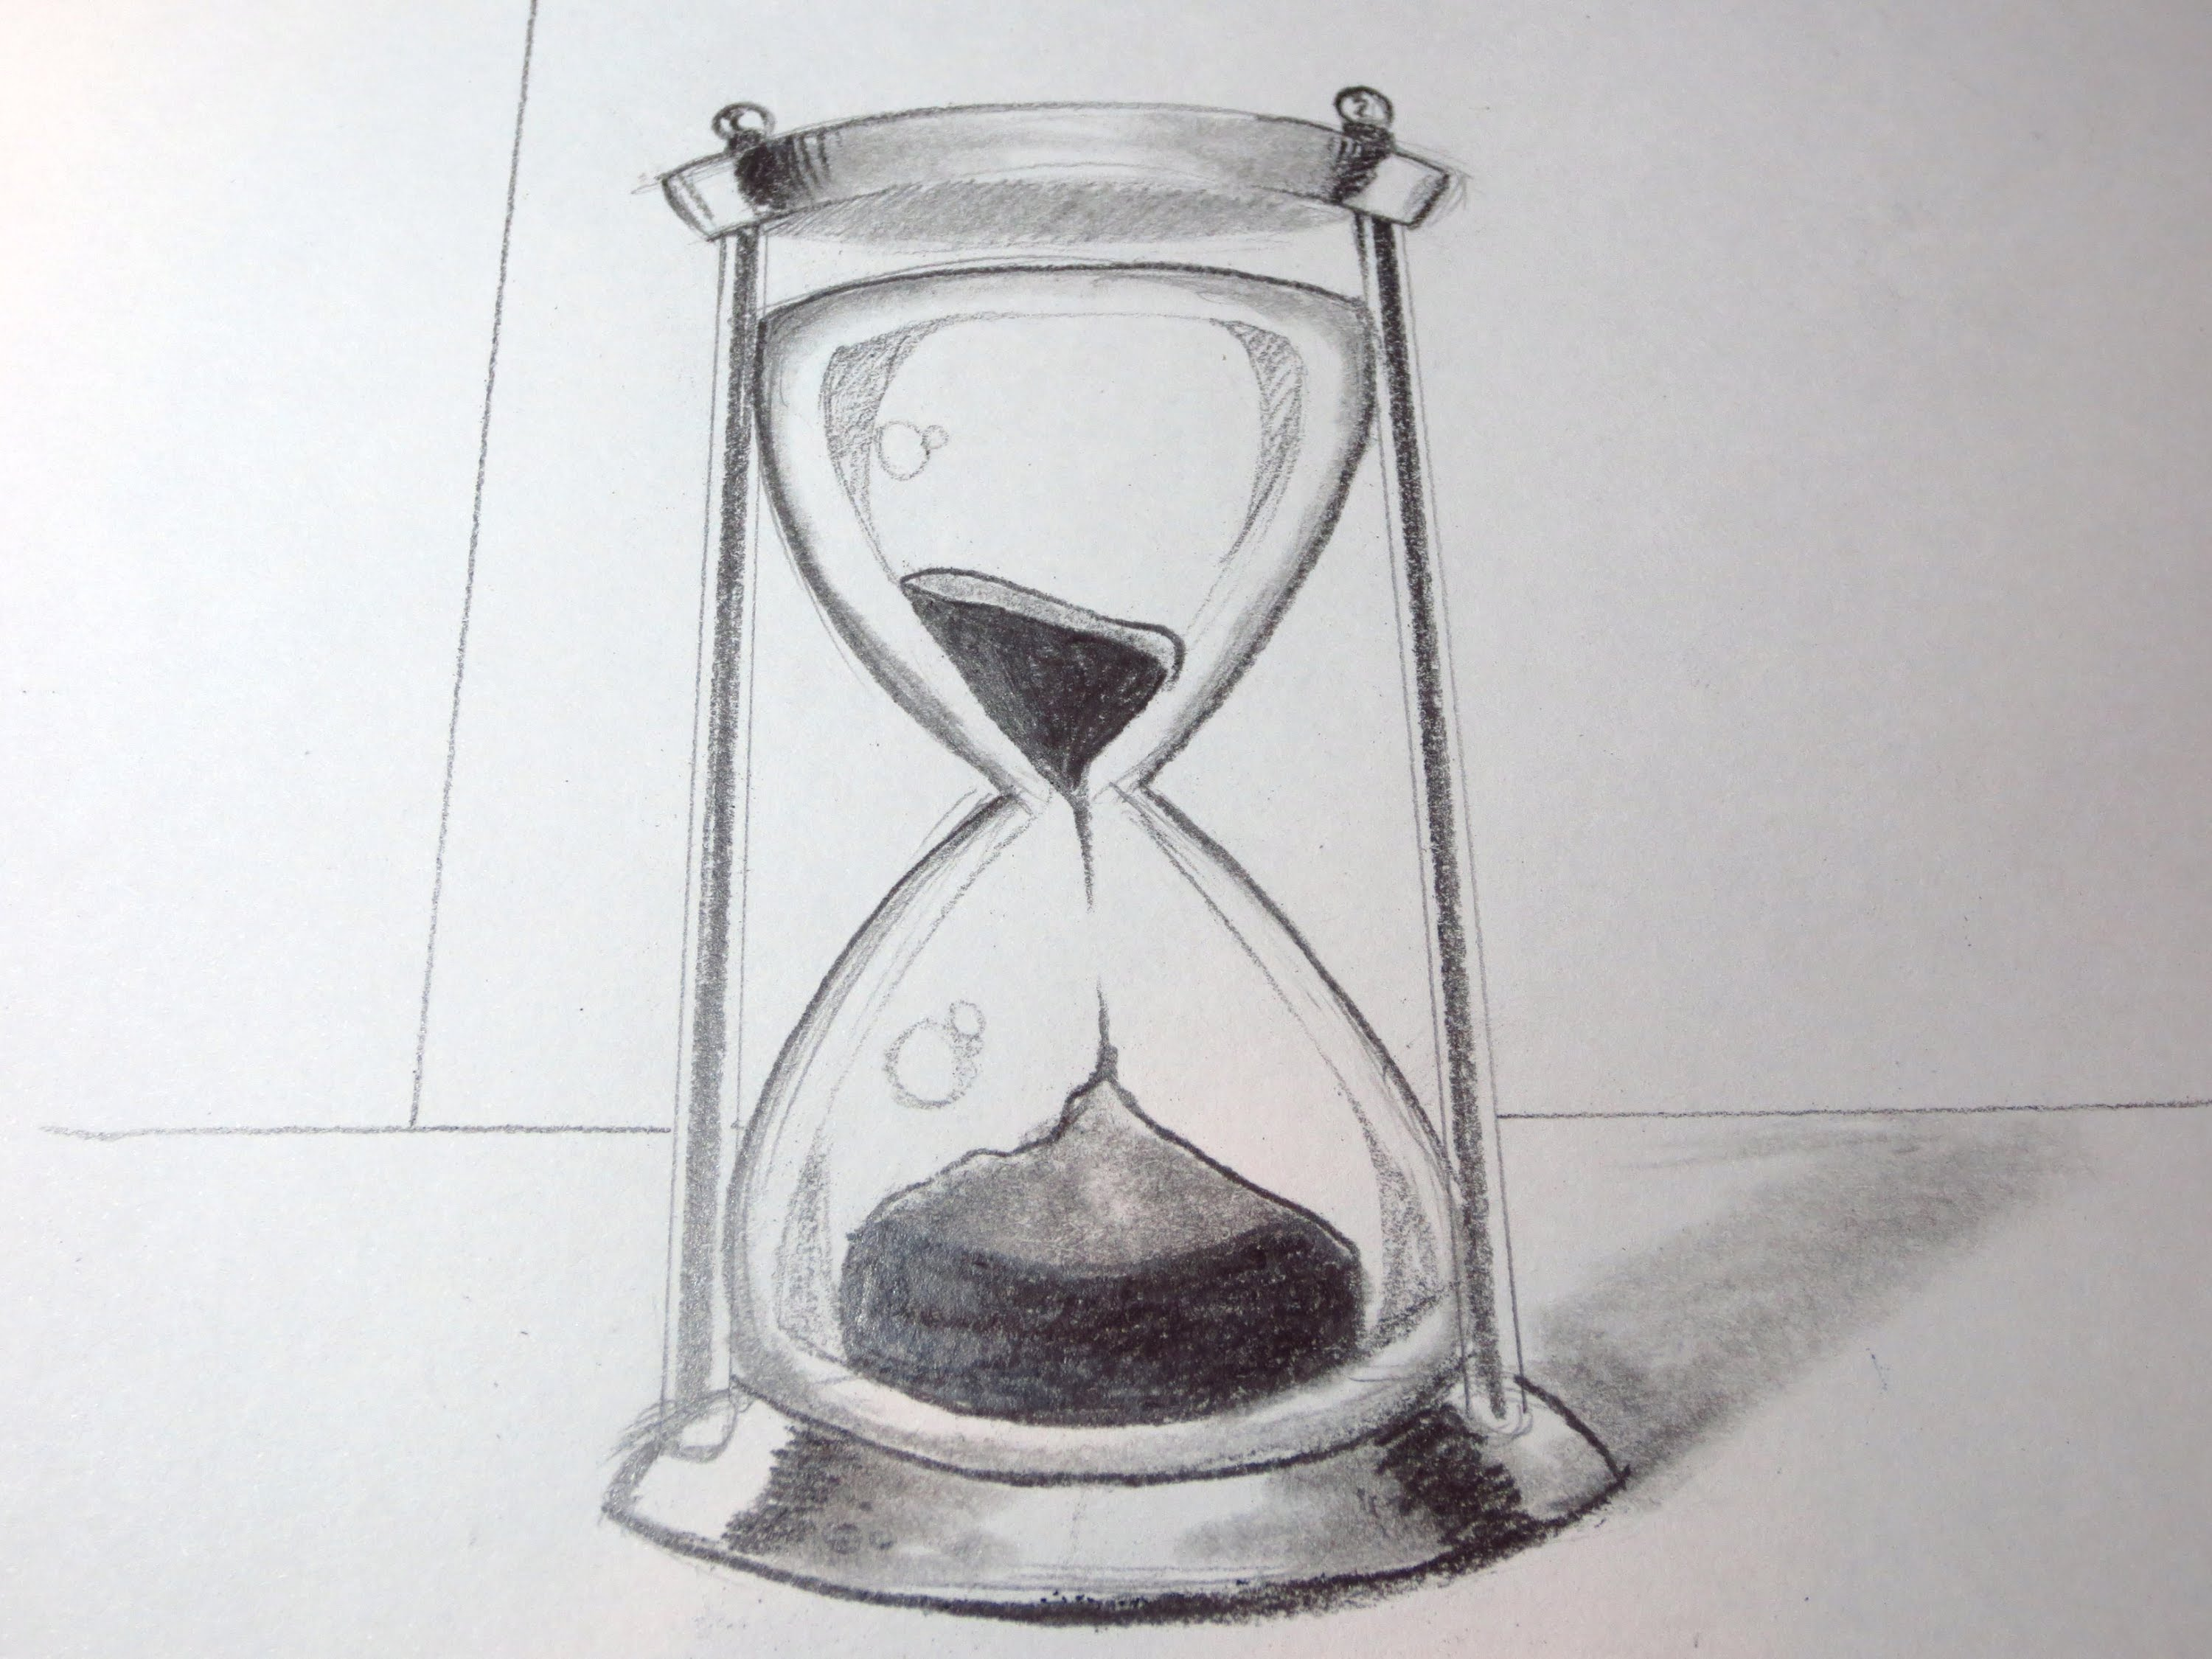 Drawn watch cartoon An Glass How Draw How